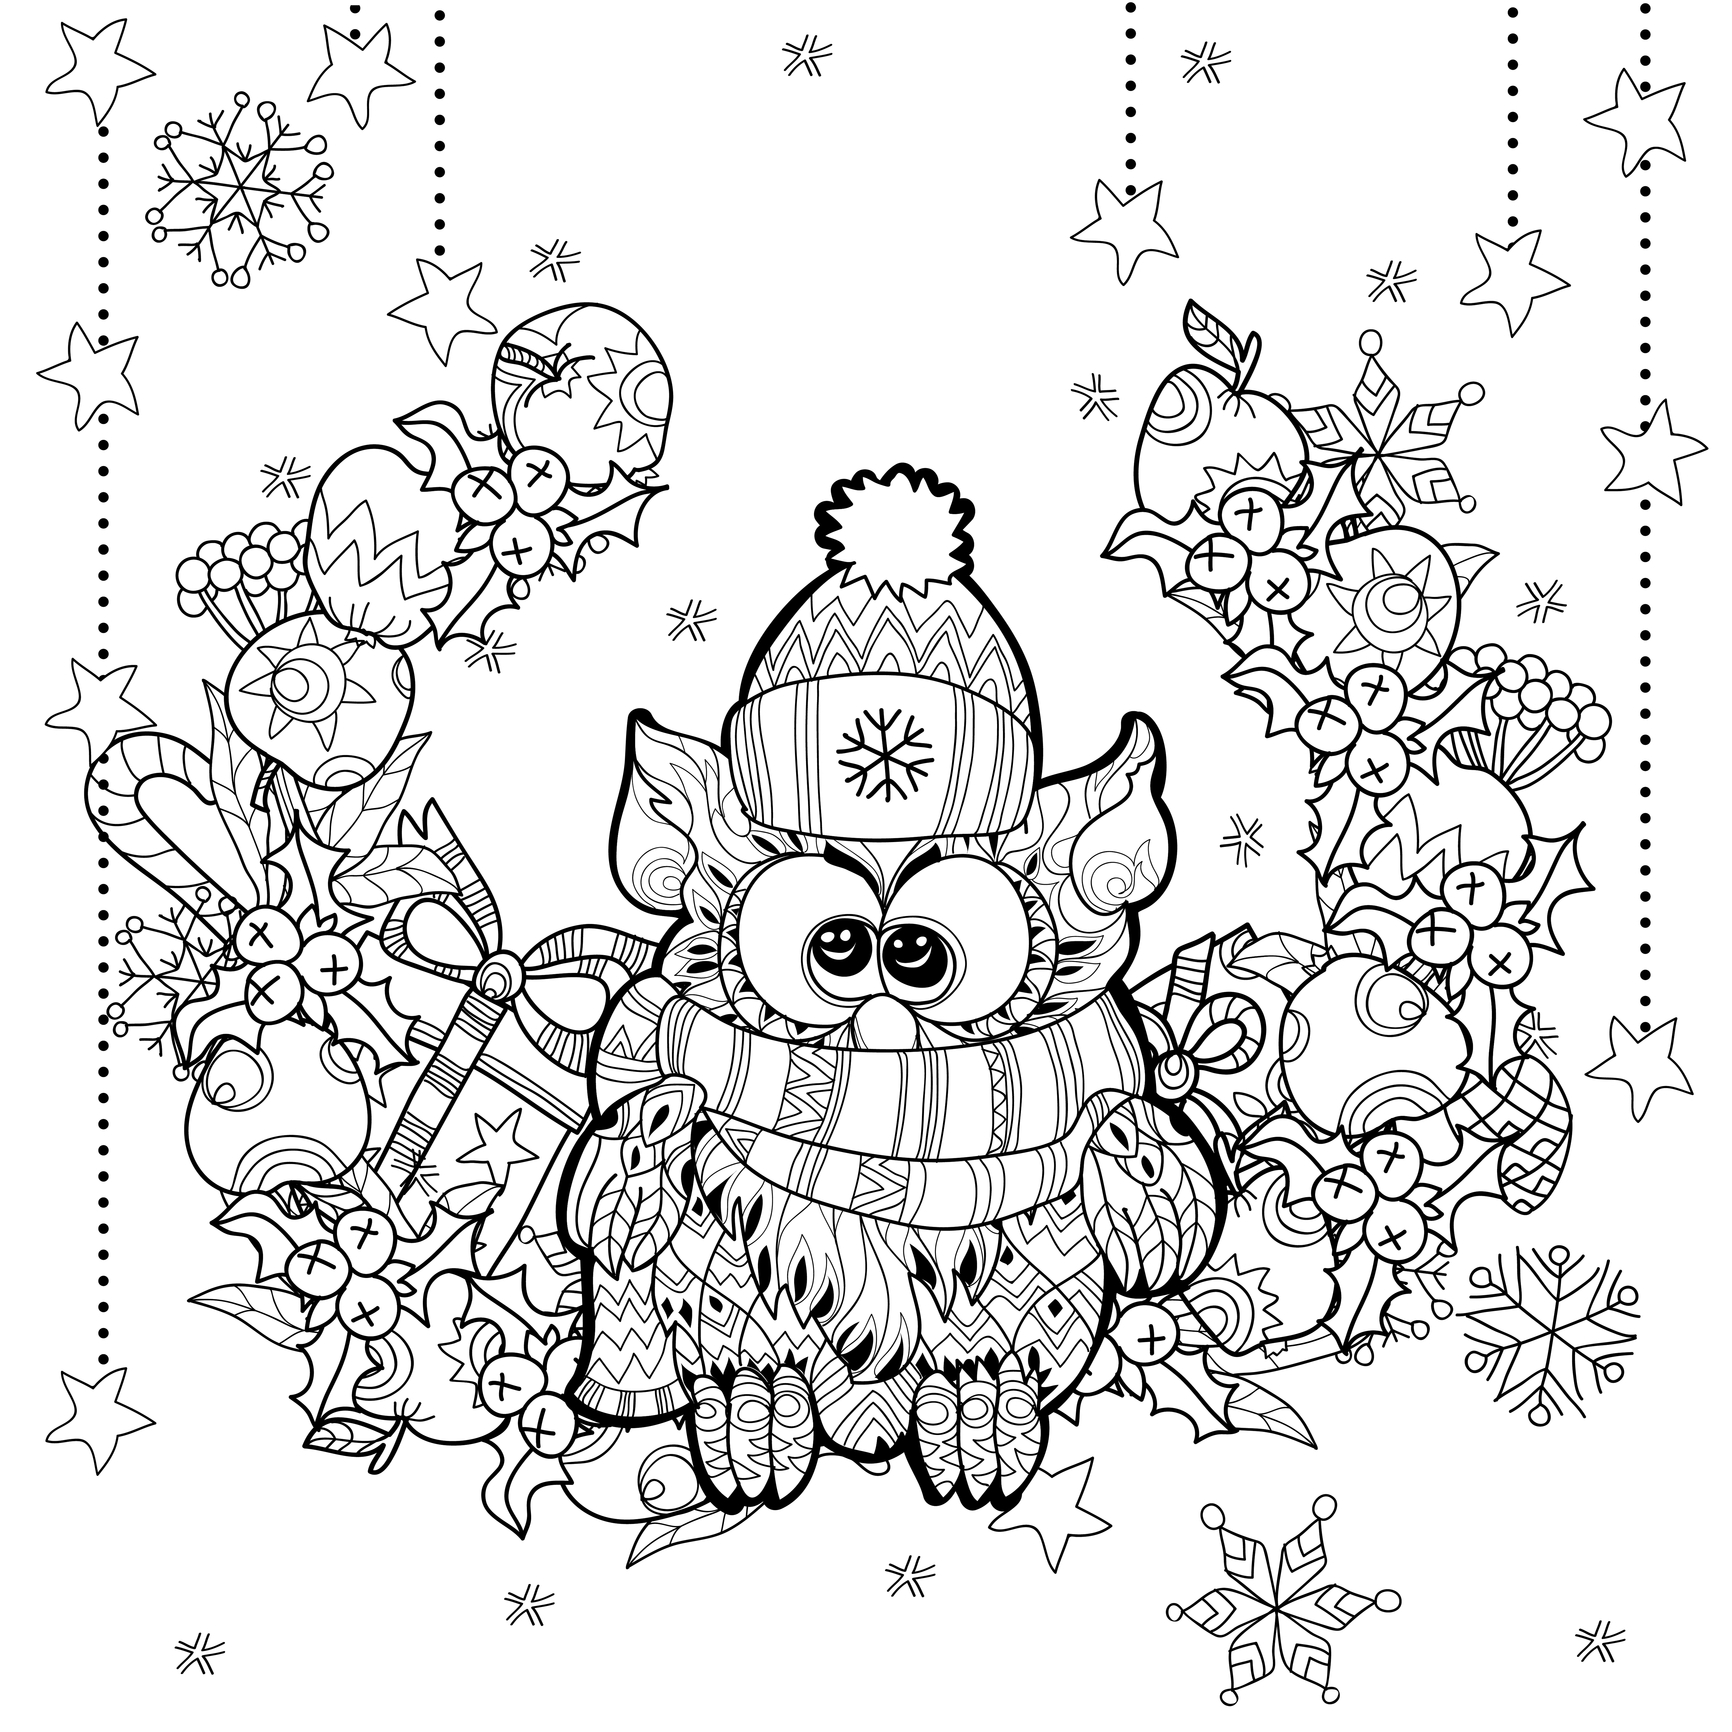 funny christmas owl from the gallery events christmas artist irina yazeva - Christmas Coloring Pages For Adults